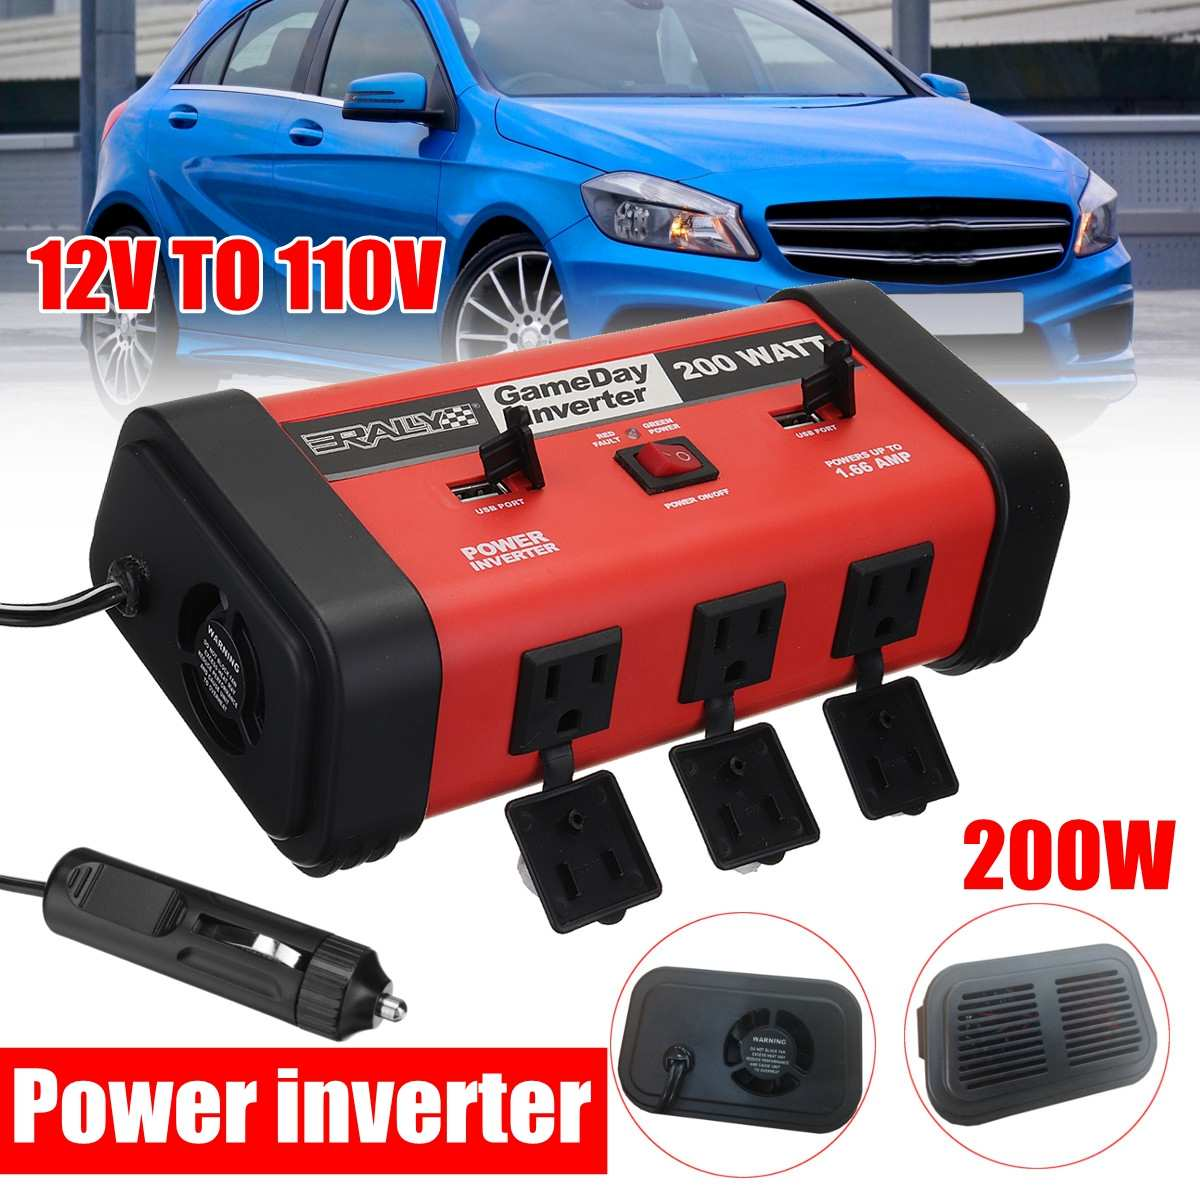 Auto Inverter 200W Auto Auto Power Inverter DC 12V zu AC 110V Adapter Konverter USB Ladegerät